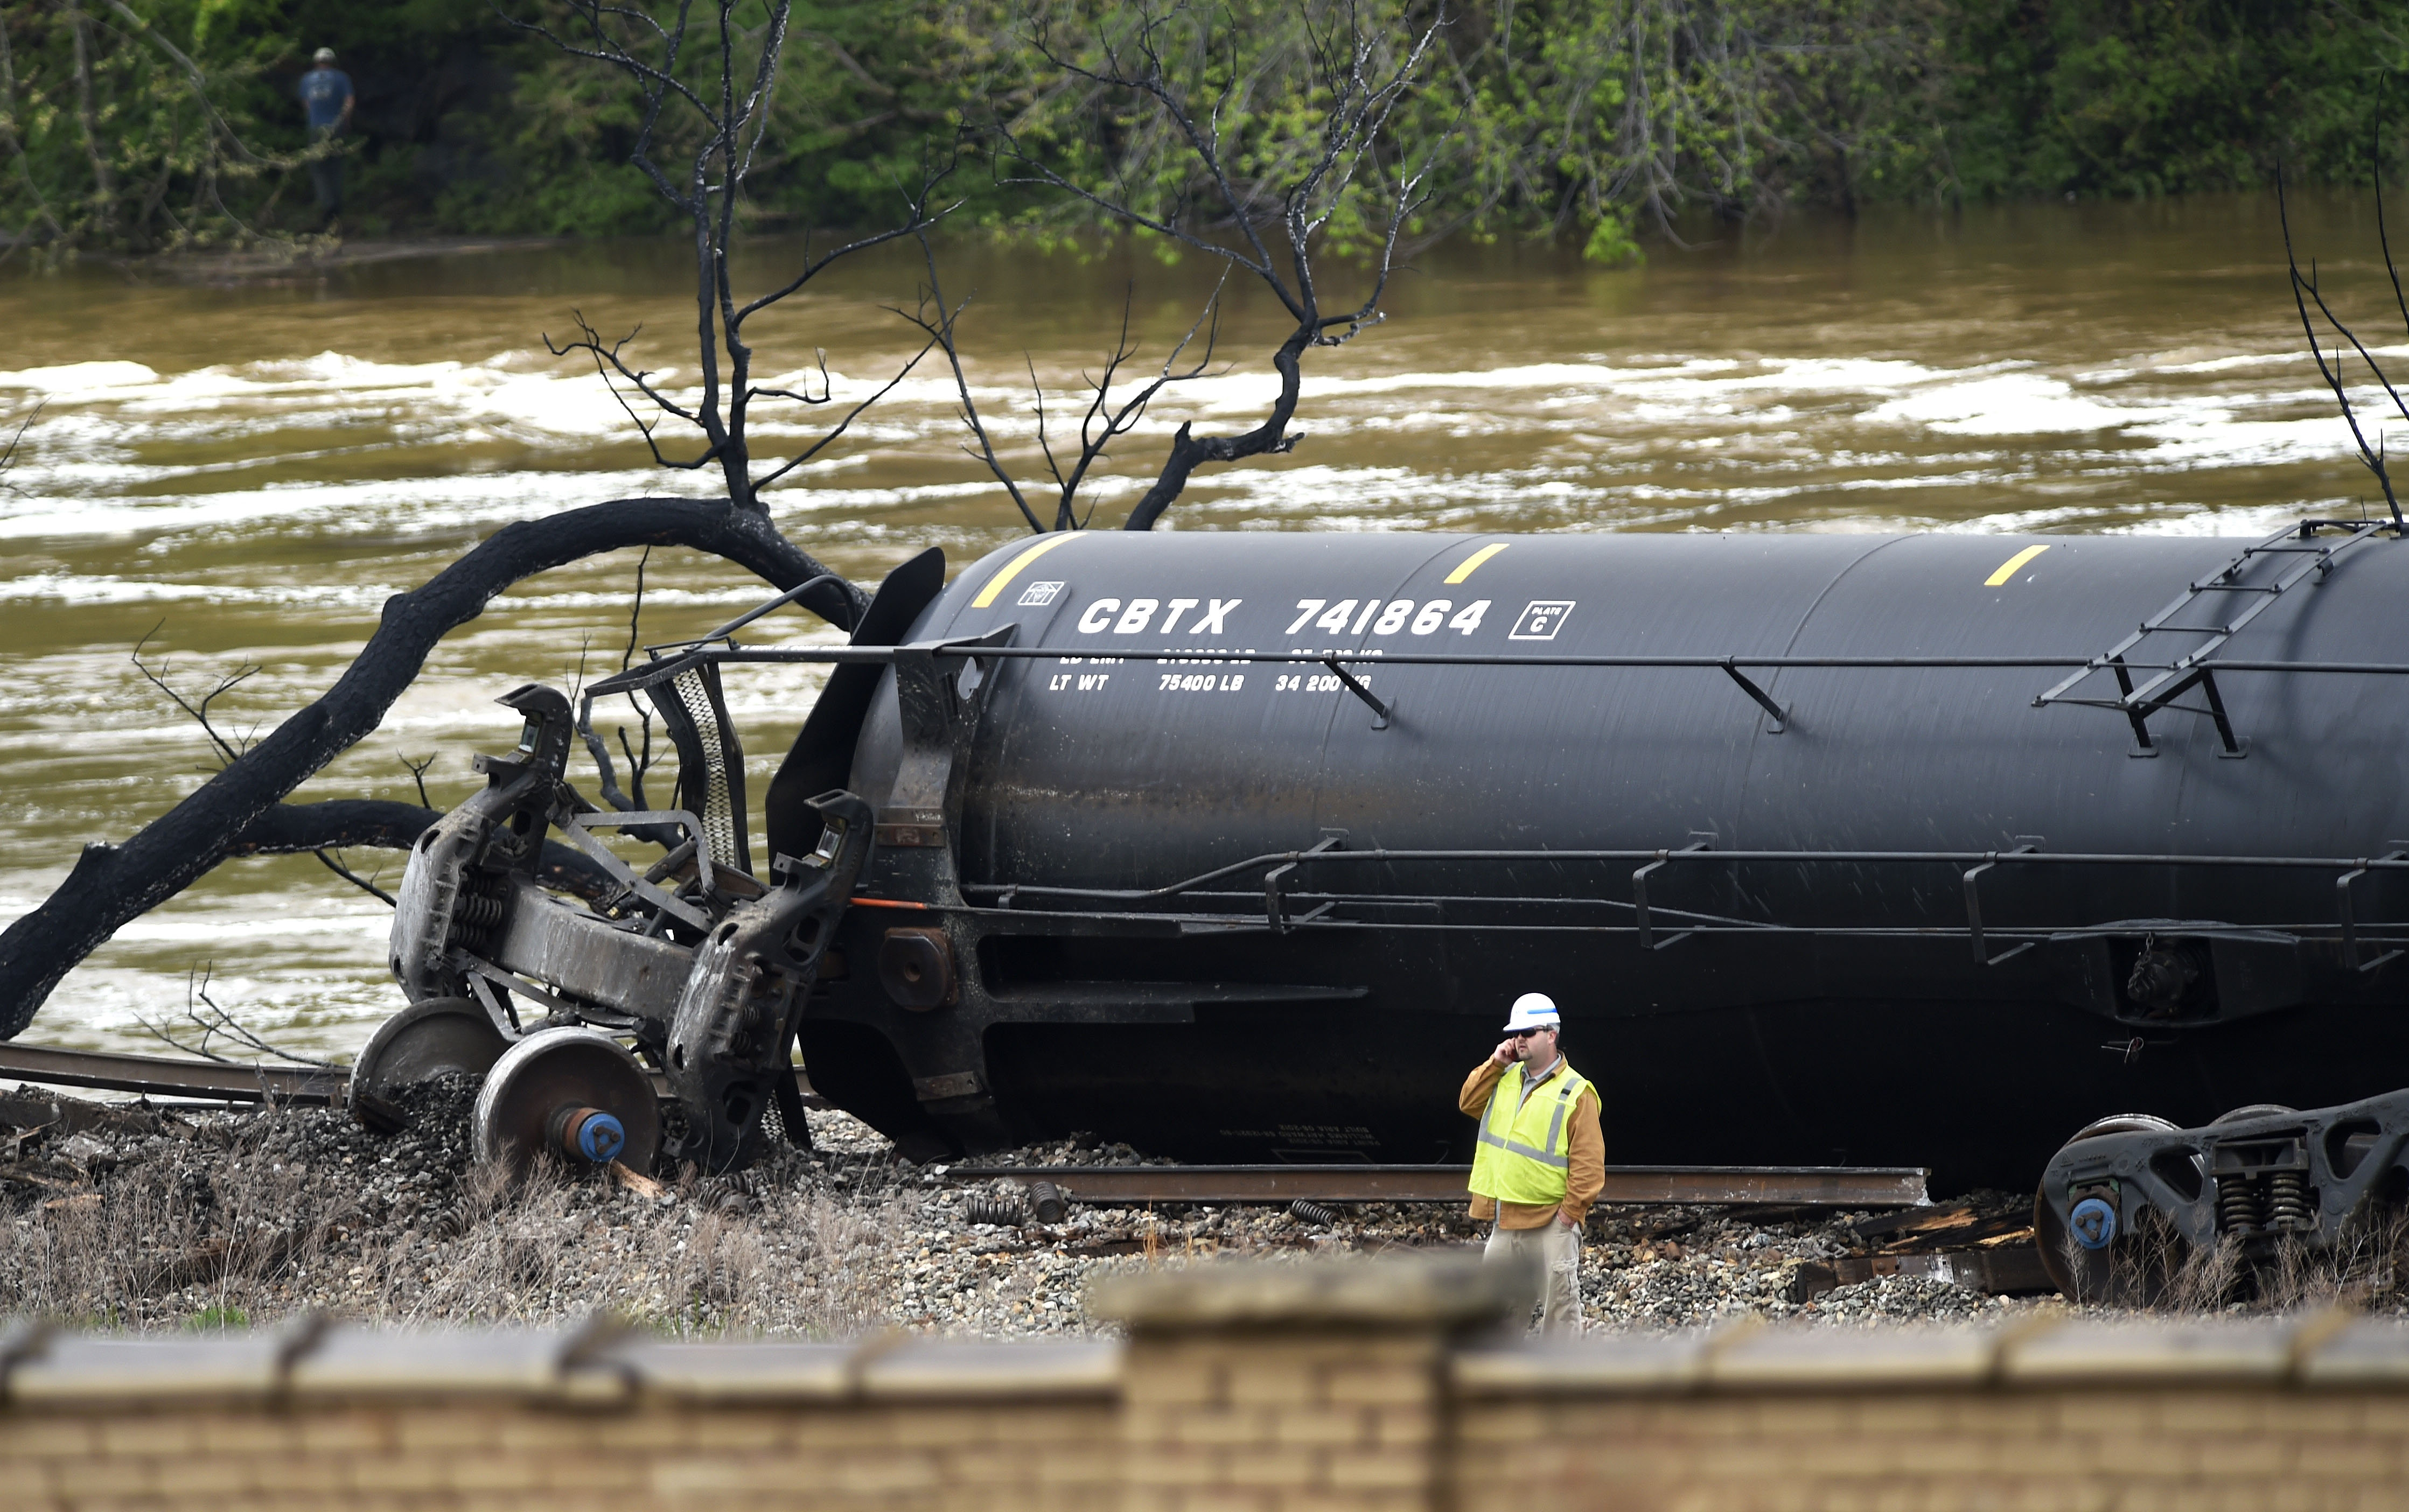 Transportation Secretary Anthony Foxx on Wednesday ordered rail companies to warn state officials when their trains are hauling crude oil or other hazardous materials through local communities. That order was spurred, in part, by the derailment of this train carrying oil in Lynchburg, Va., last week. In the photo, a worker stands by a damaged tanker car Thursday.